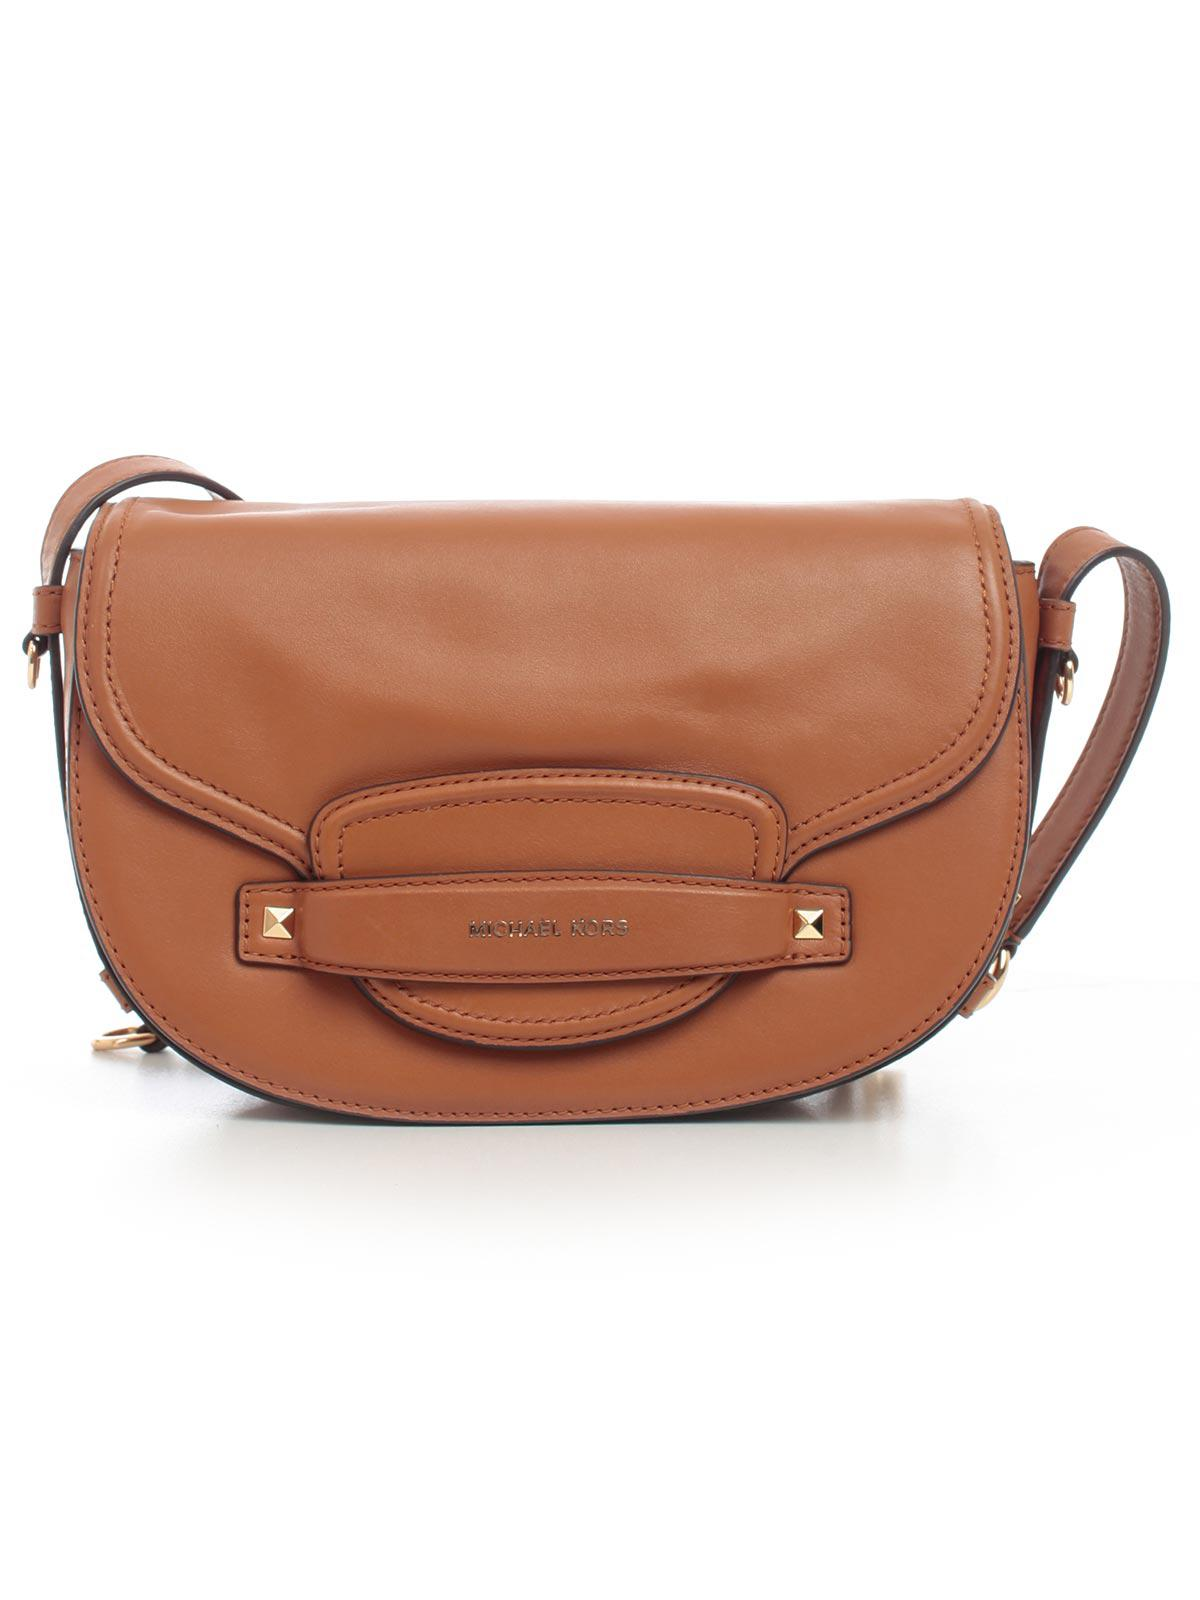 5c42f62852e8 Michael Michael Kors Cary Md Saddle Bag in Brown - Lyst